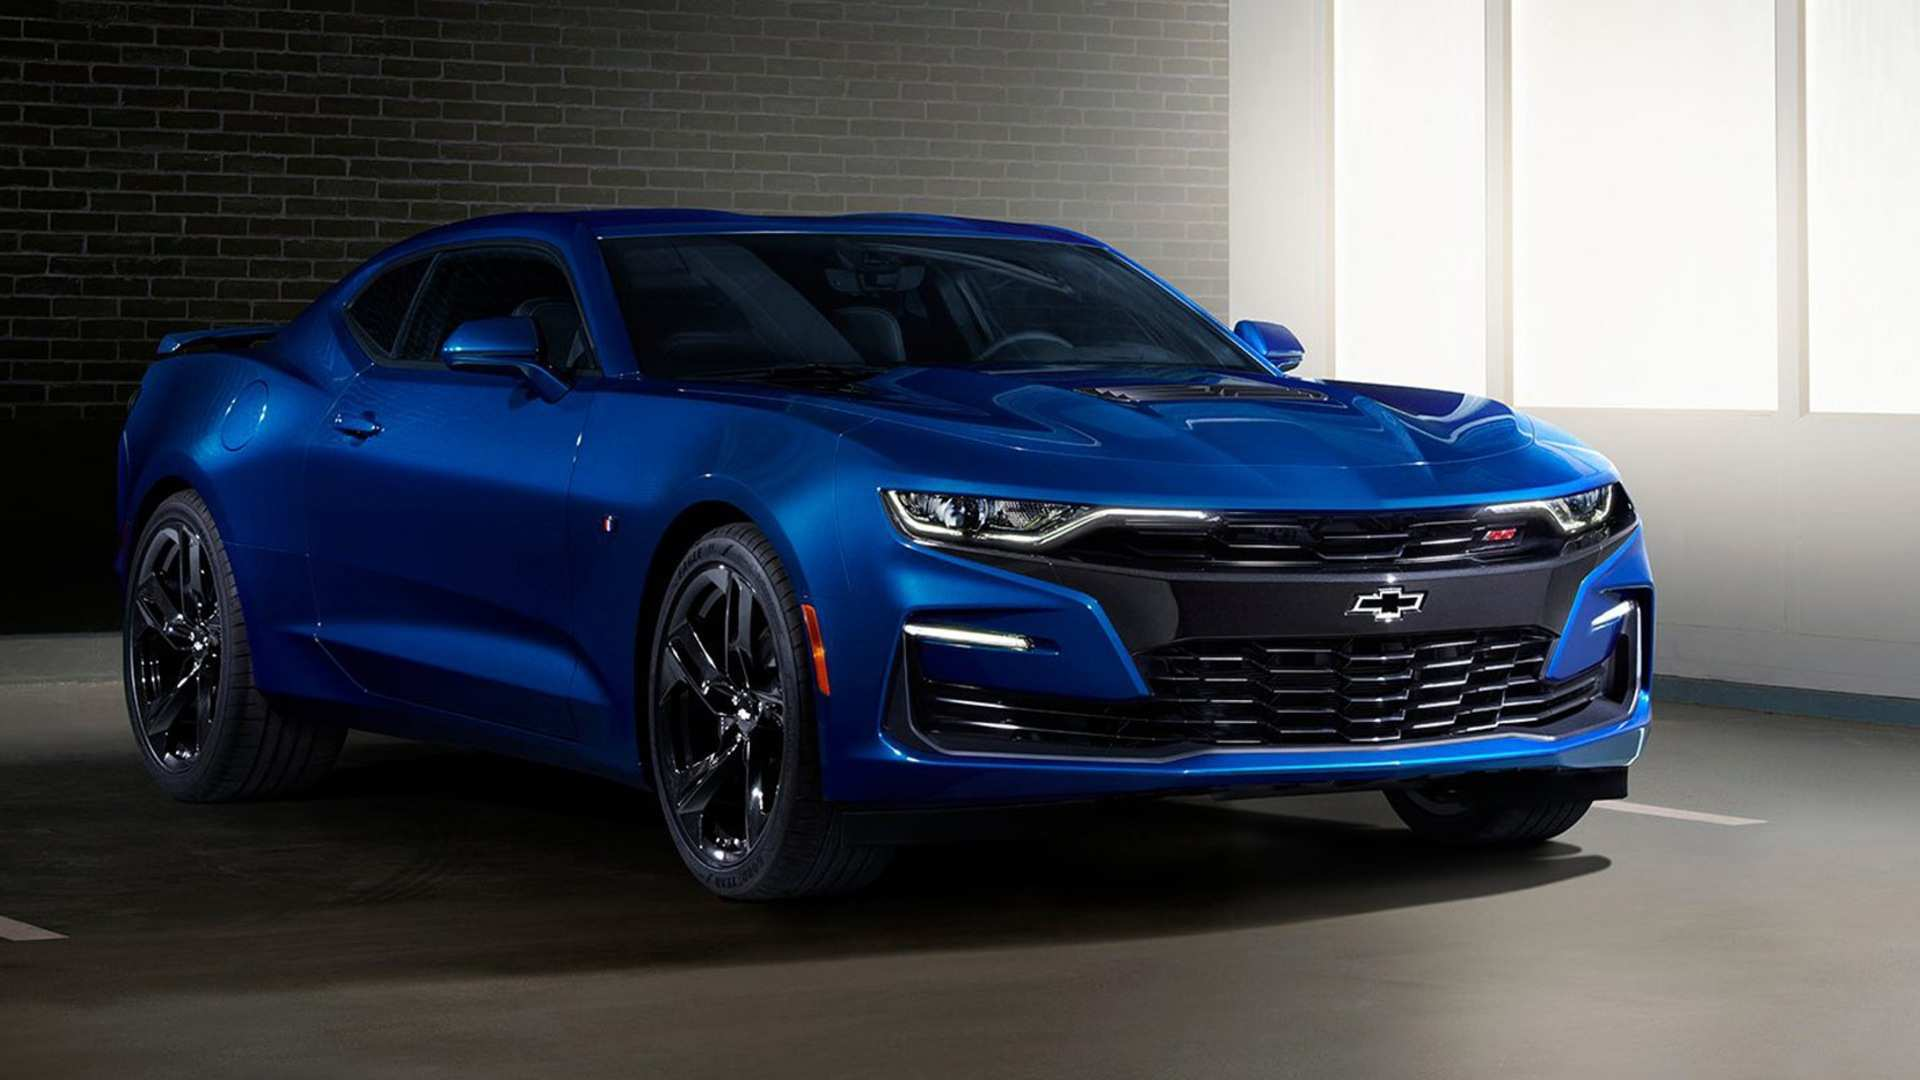 74 New Chevrolet Concept Cars 2020 Rumors with Chevrolet Concept Cars 2020